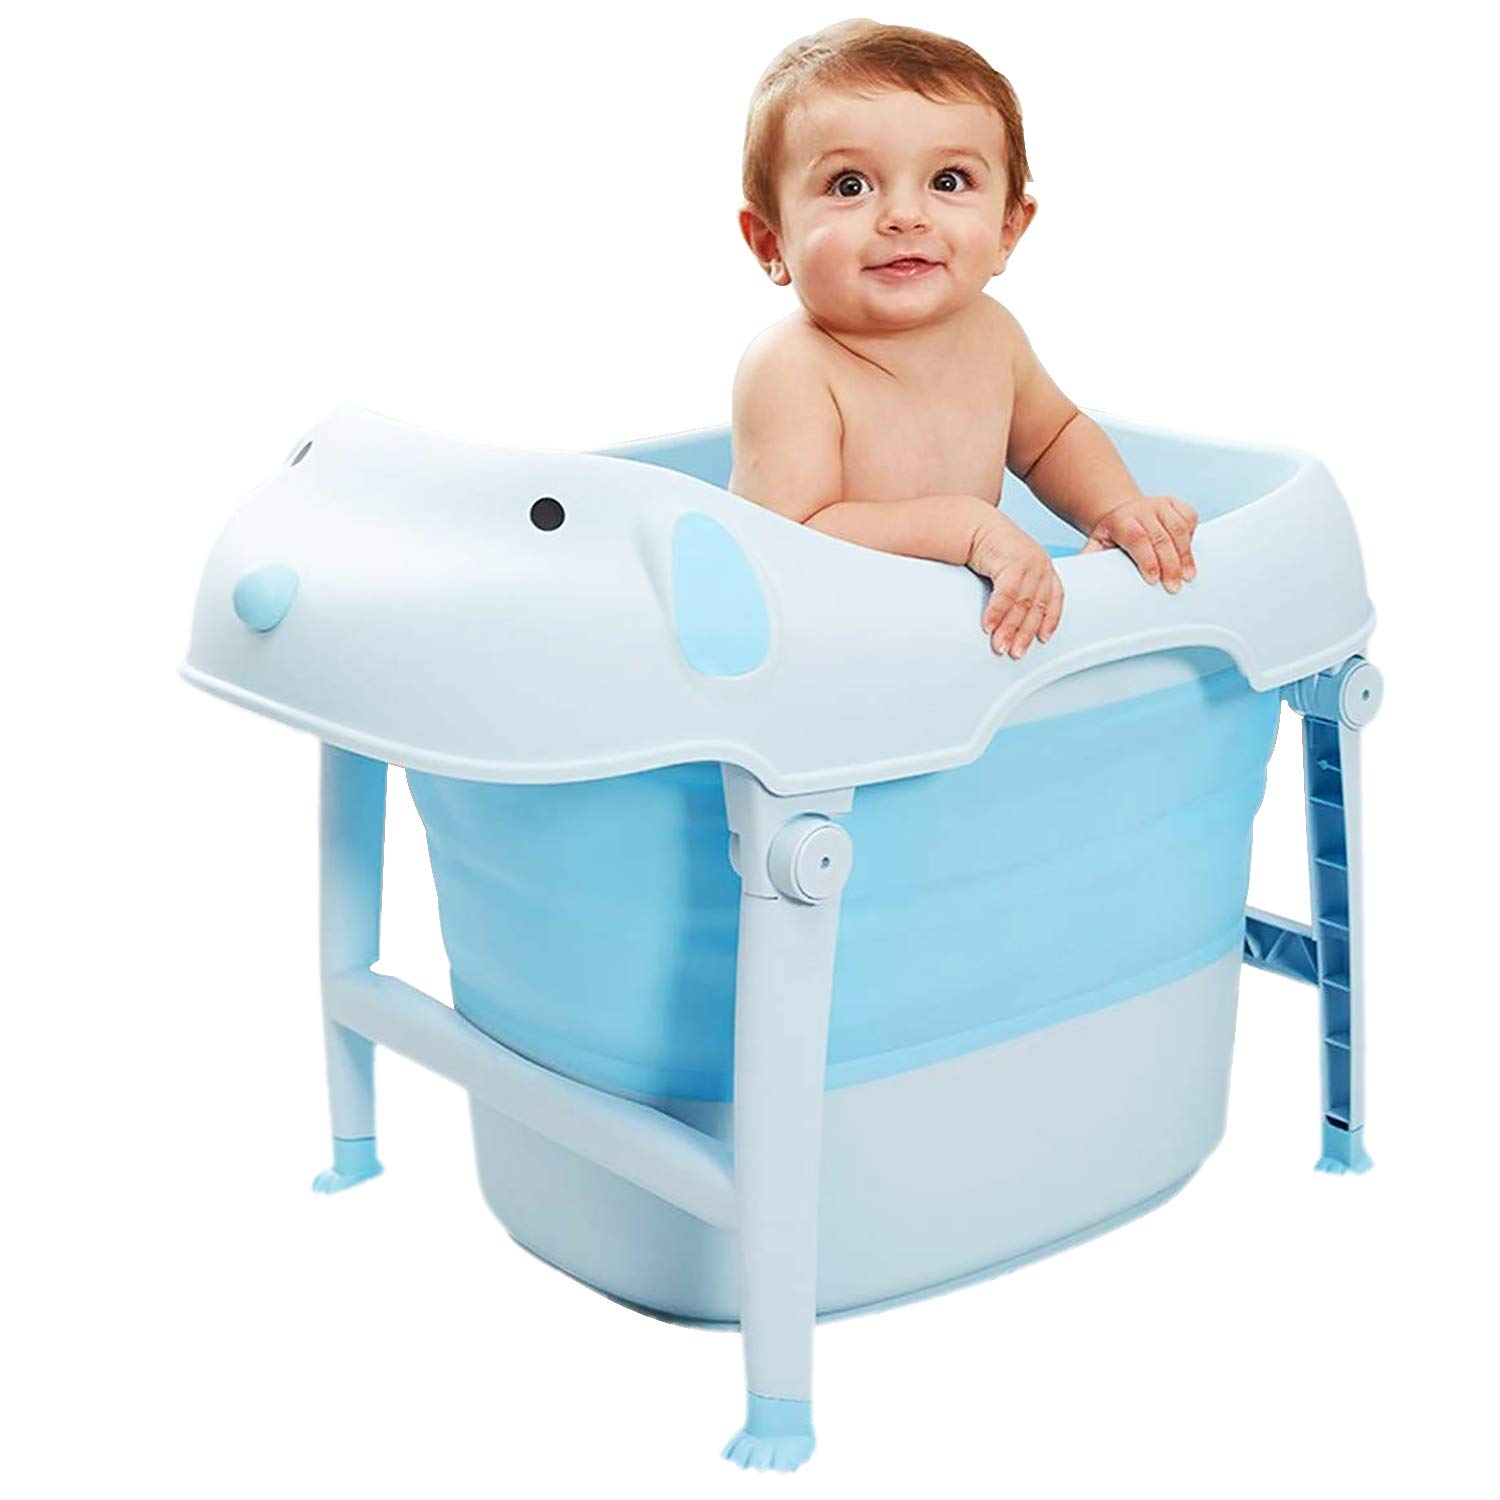 Collapsible Bathtub with Soft Bath Pillow & Lounger, Baby Bathing Tub Portable Foldable Thickened Shower Basin for Infants Kids Aged 0-10 Years Old [29.13x19.68x21.26inch] (Blue)